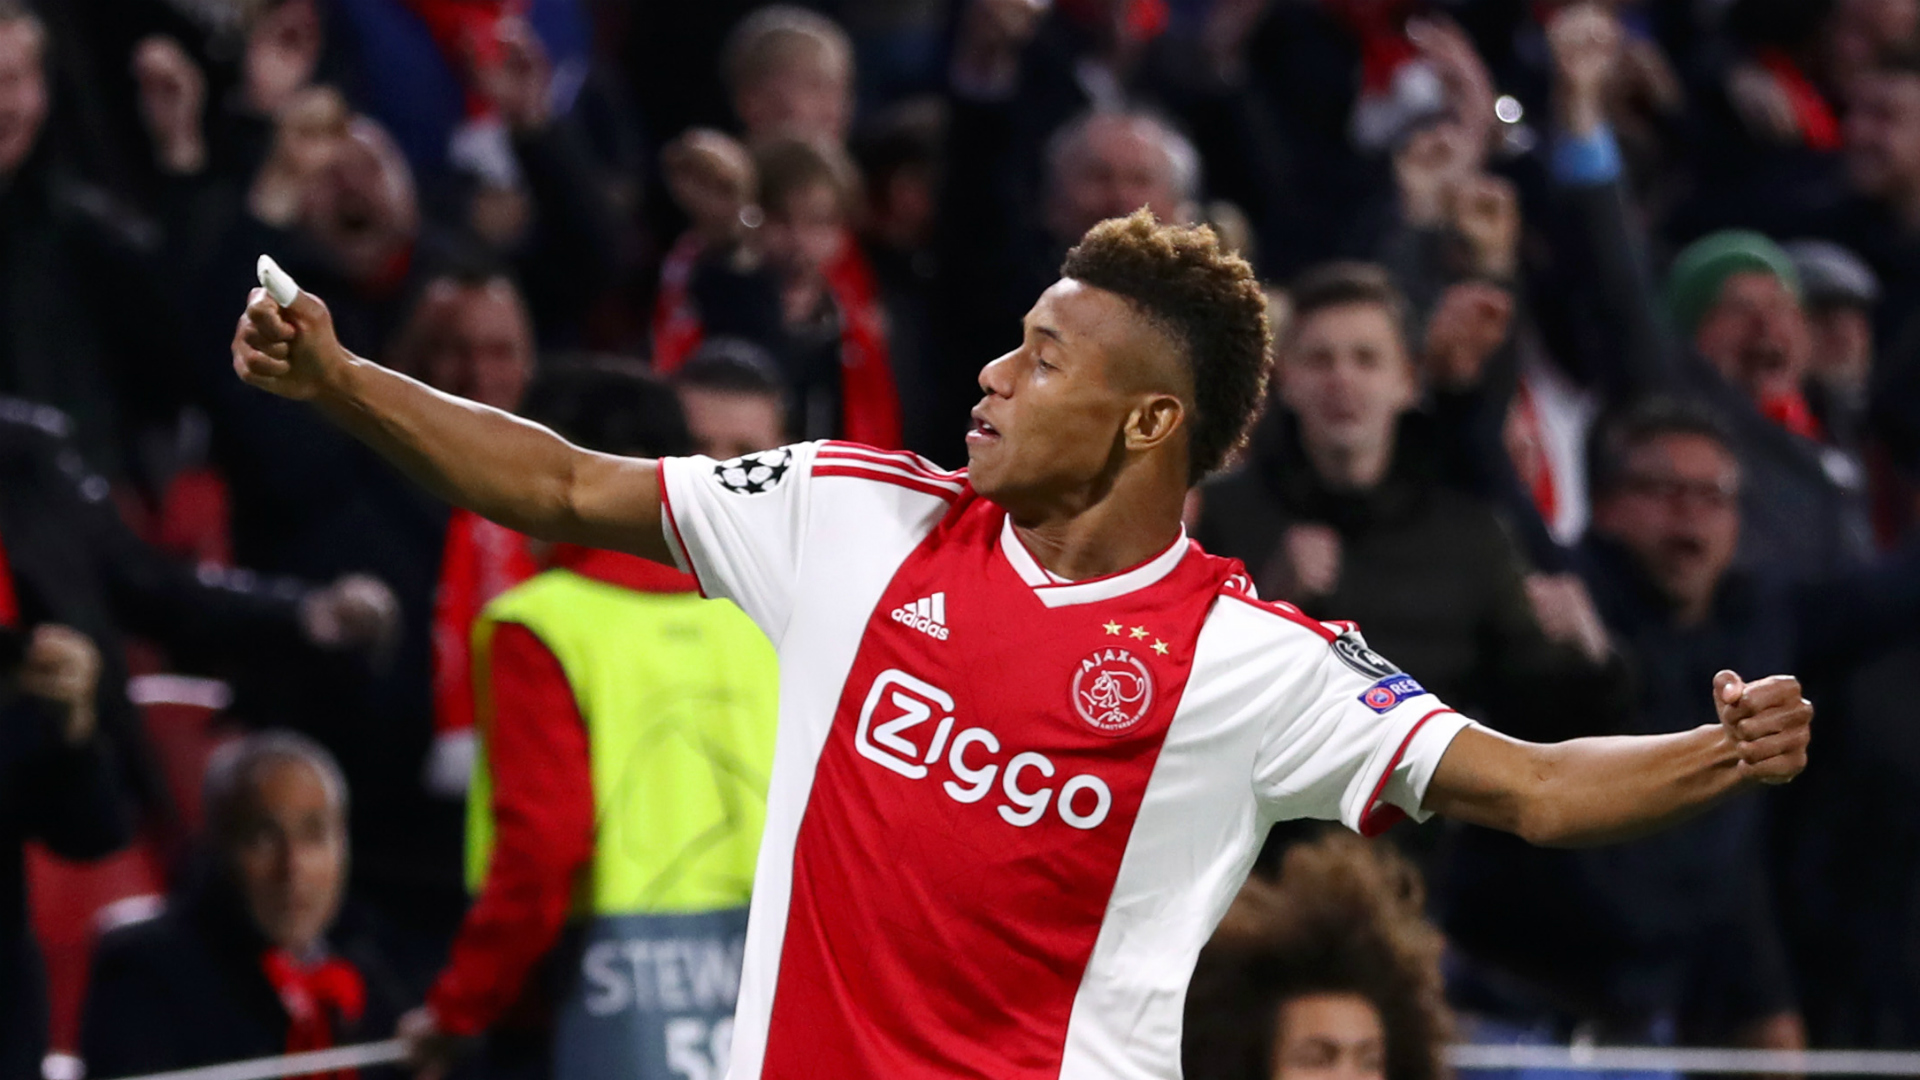 Ajax showcase their pure class in first leg win over Tottenham